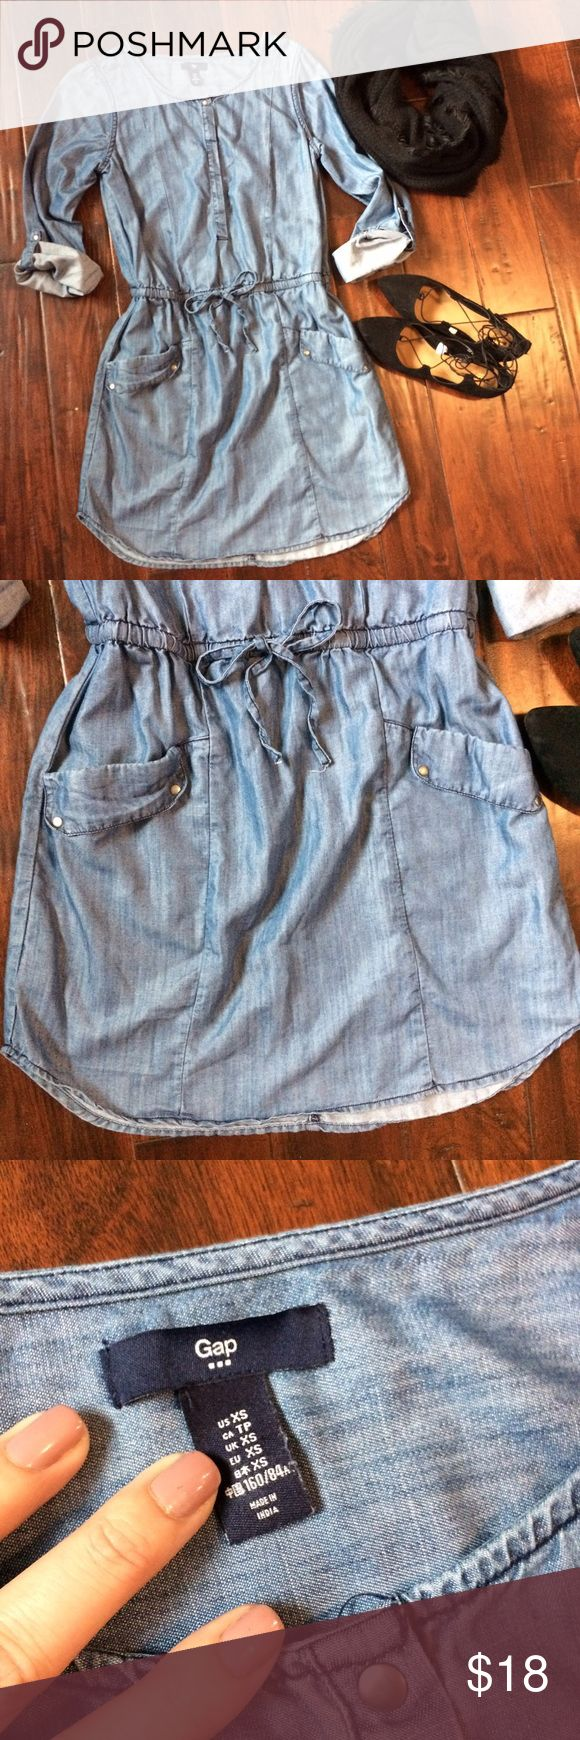 👩🏻Gap chambray denim dress xs vguc Adorable dress! Cinched waist accentuates your curves also has drawn string. Adjustable sleeves. Hidden buttons up chest with one visible metal button at top. Great spring-winter dress. Can be styled so many ways! Approx measurements taken lying flat:Length in middle from top to bottom 35inches • top to side hem 32.5•pit to pit 18 • waist 15inches GAP Dresses